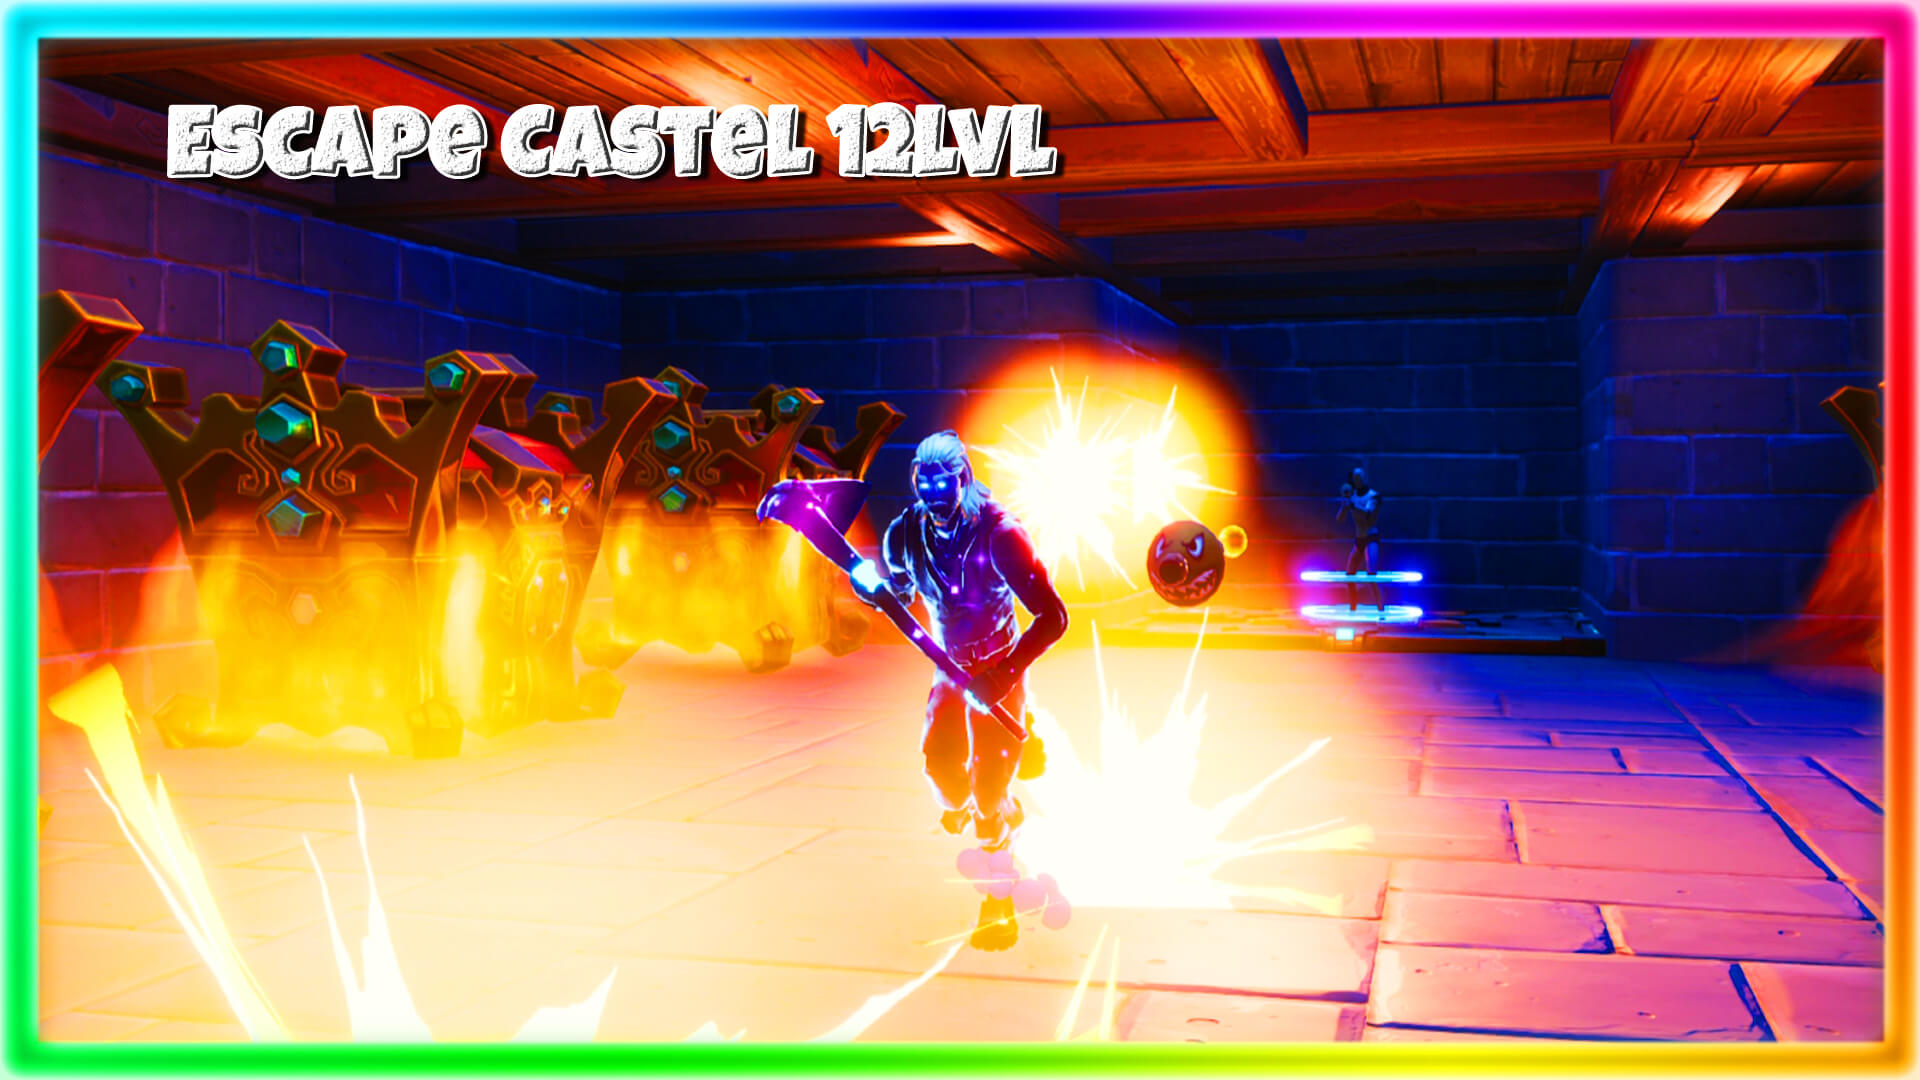 ESCAPE CASTEL 12 LVL